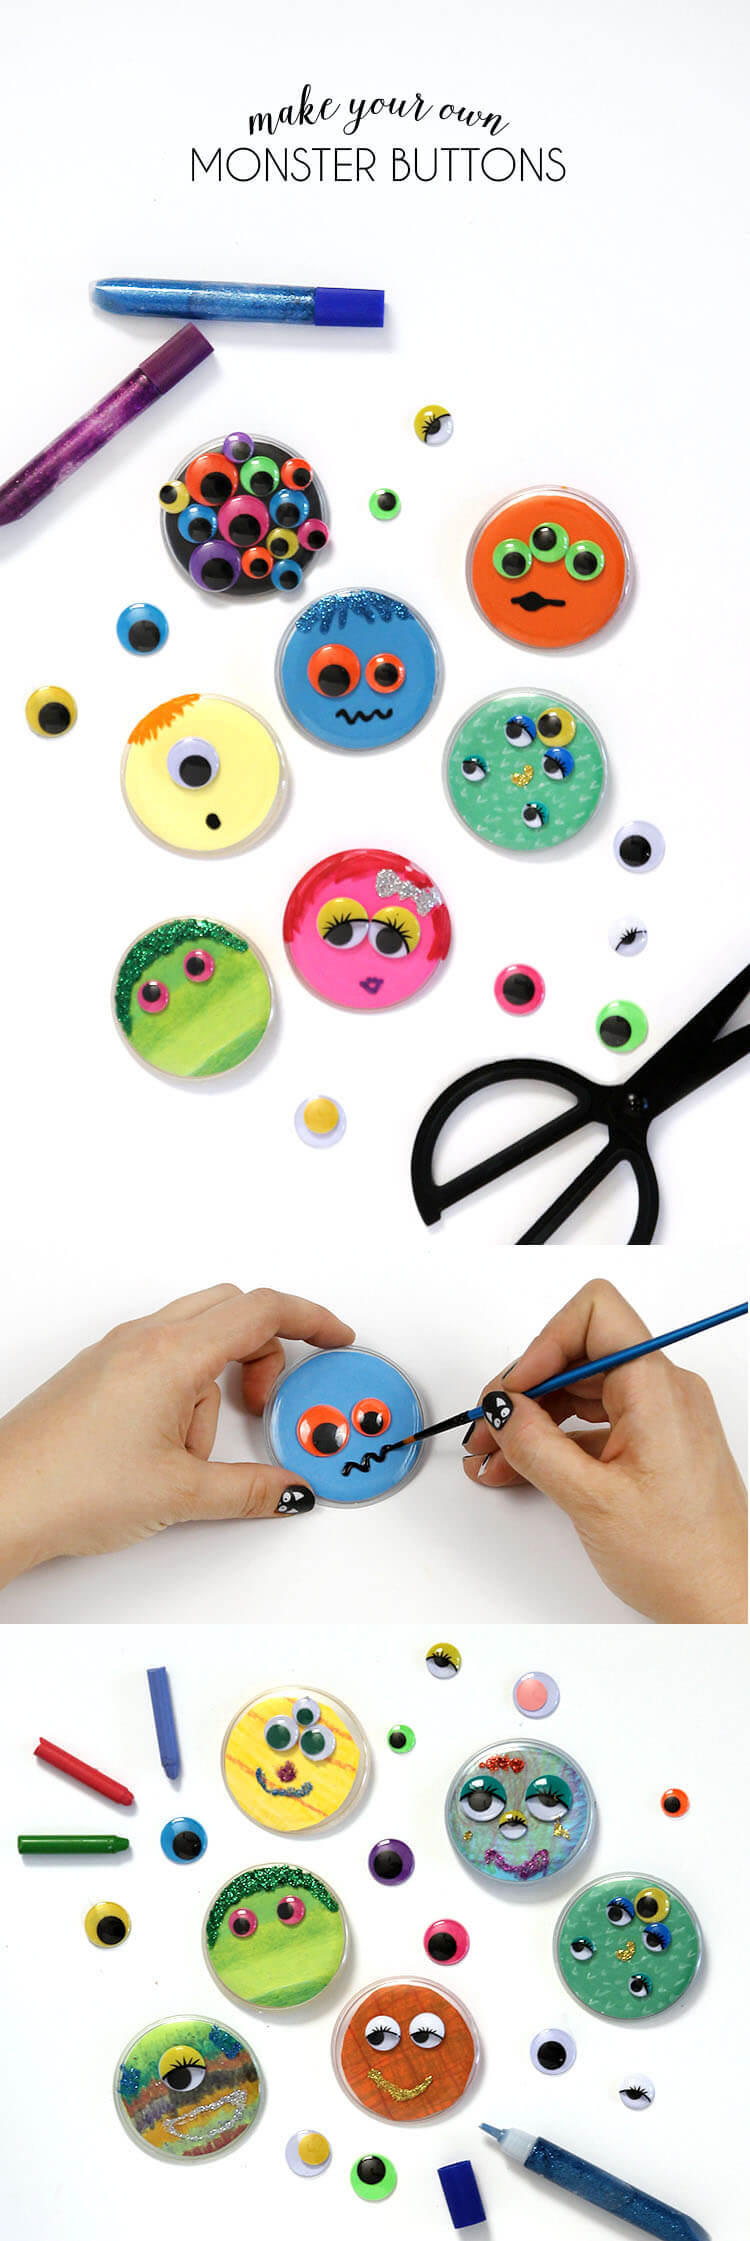 Monster Buttons - such a cute kids Halloween craft idea